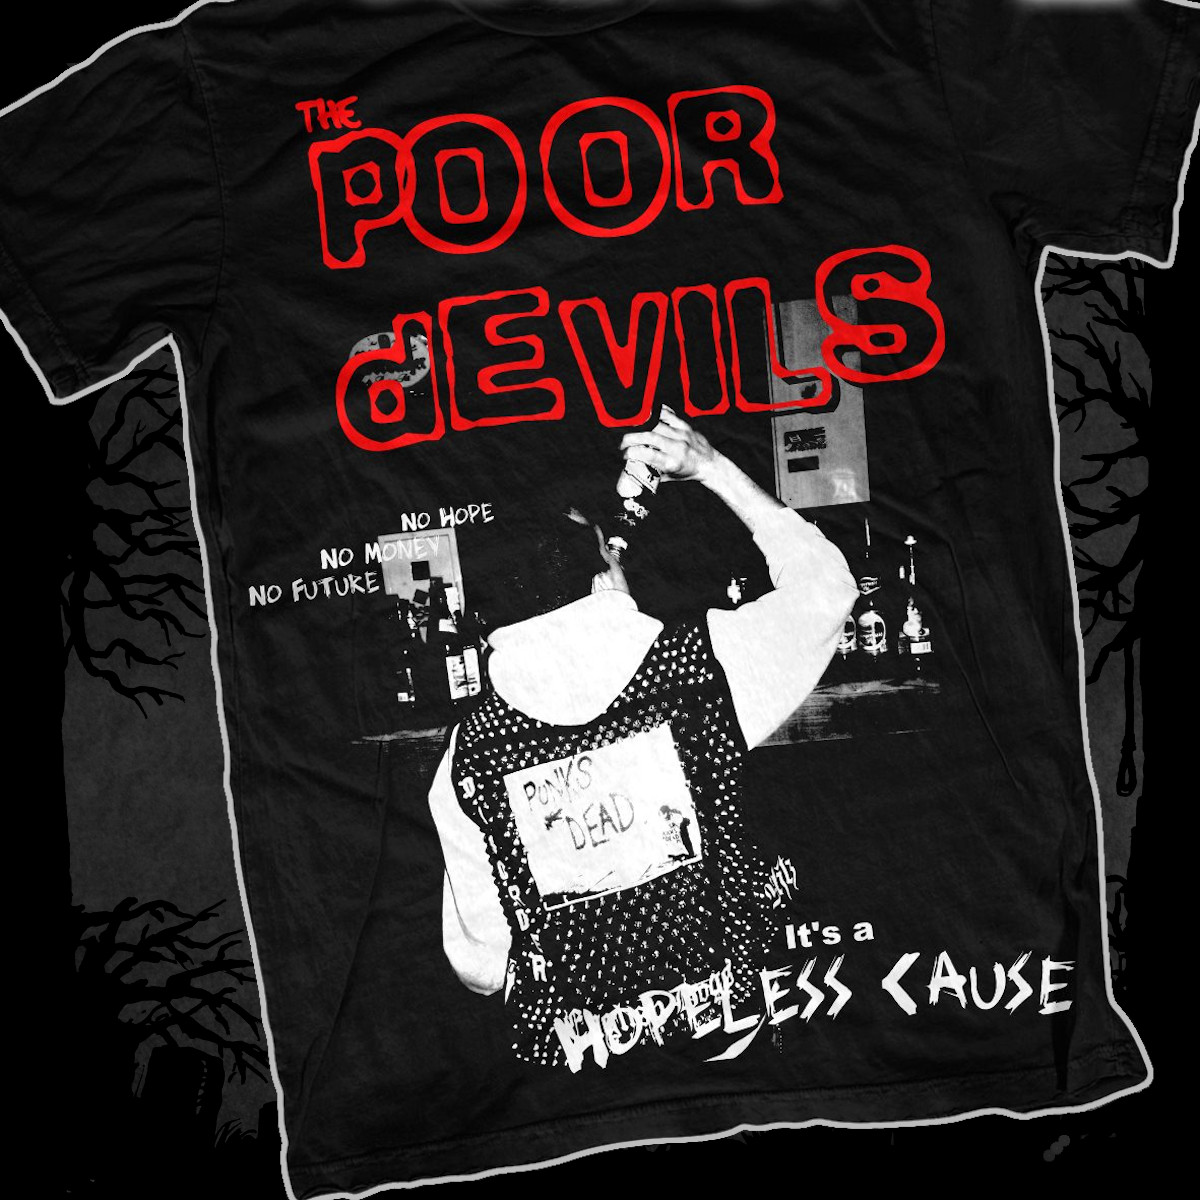 The Poor Devils - Hoepless Cause [T-Shirt] (Farbe: schwarz | Print: weiß, rot)